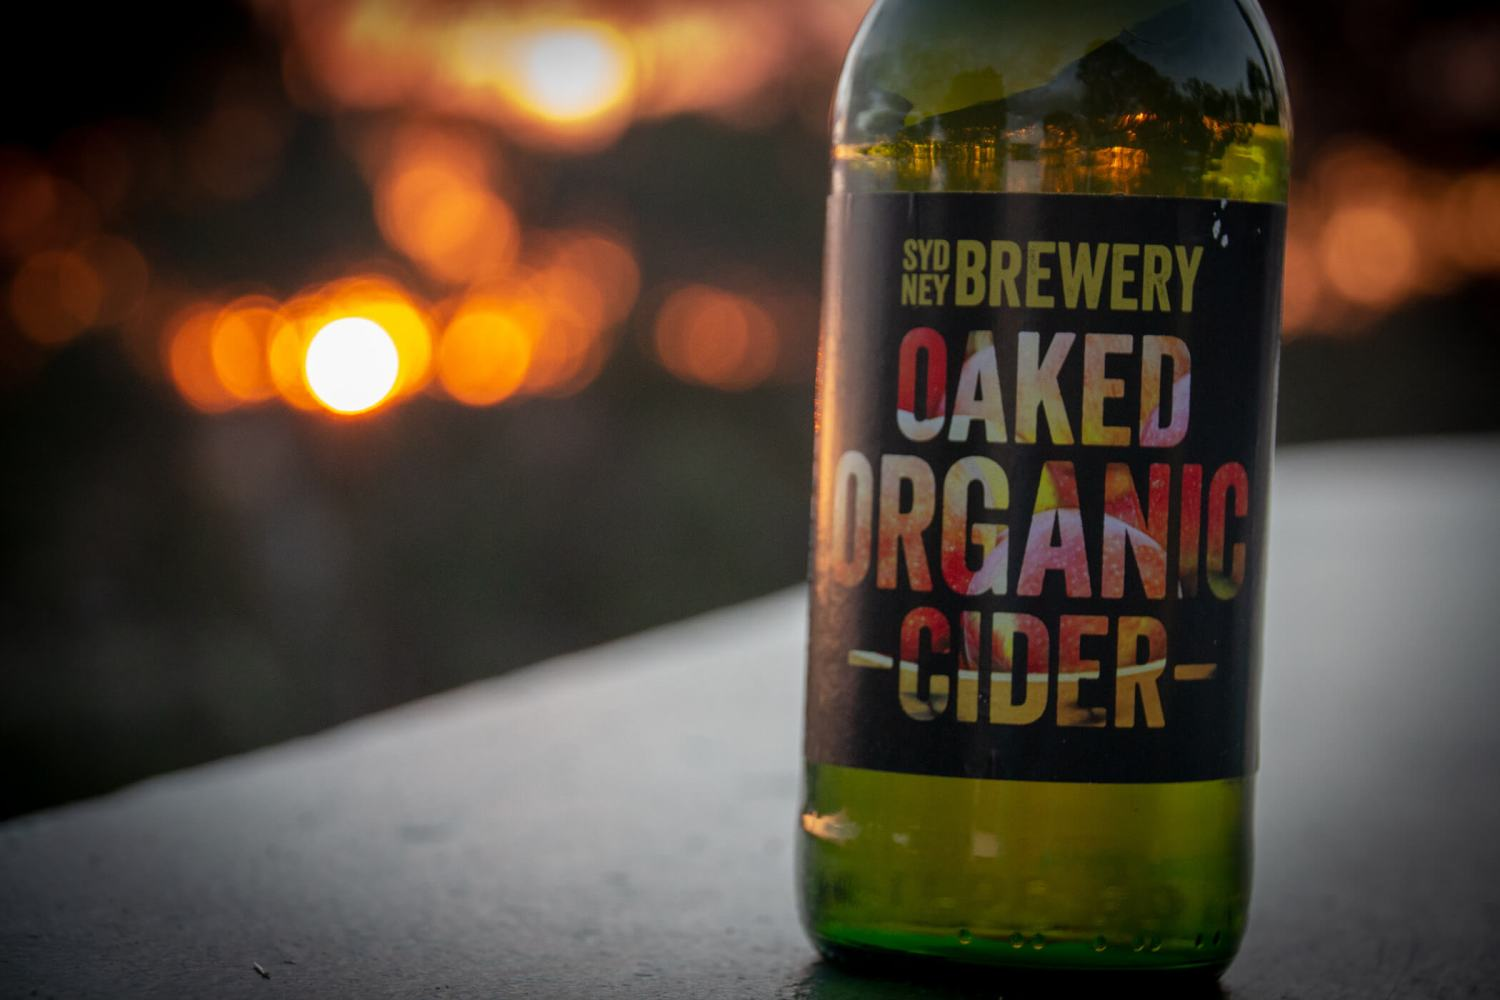 Sydney Brewery Organic Oaked Cider